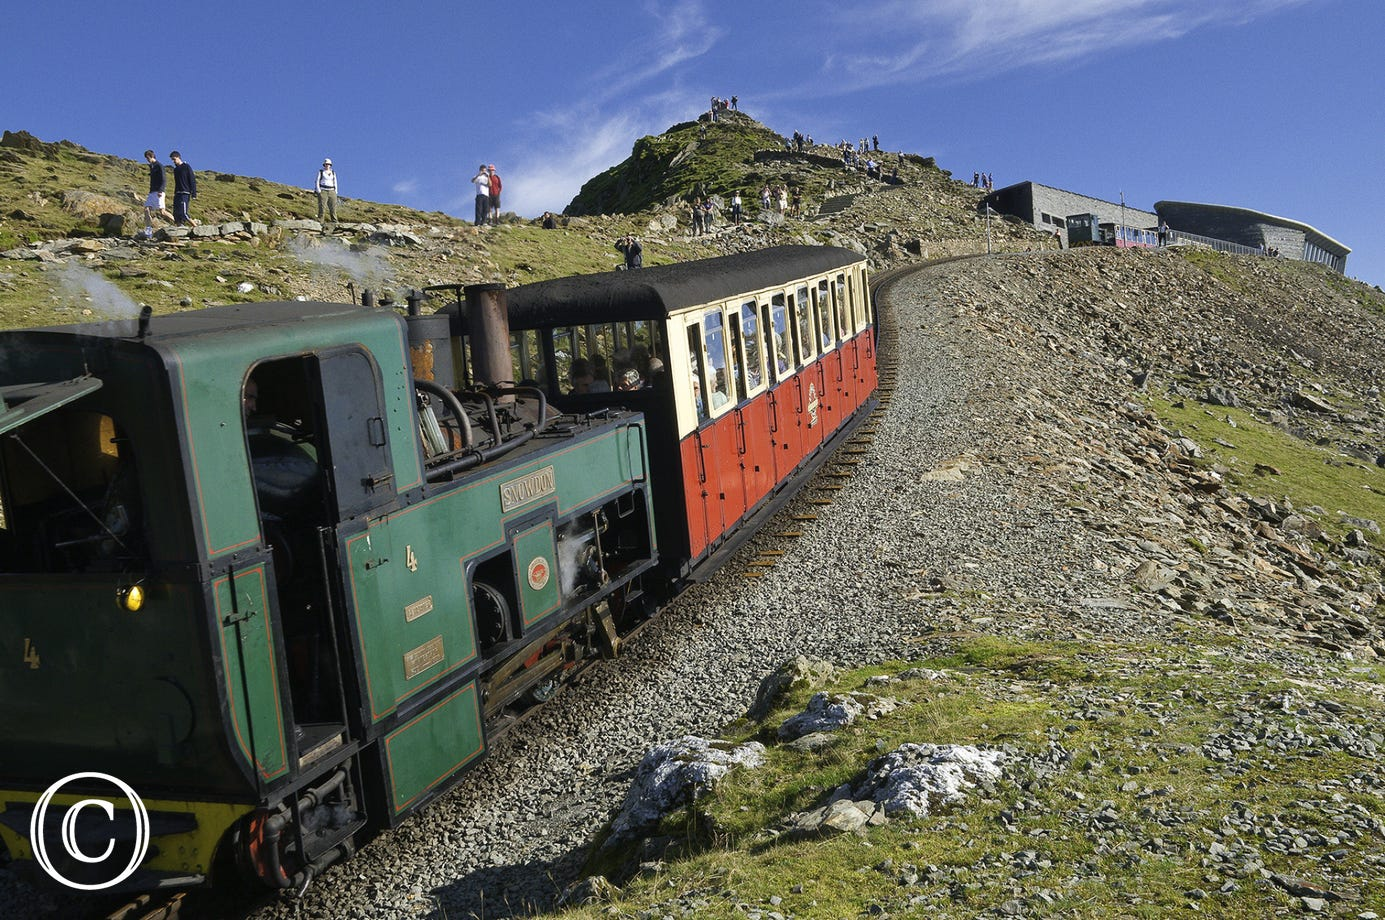 Train to the top of Snowdon